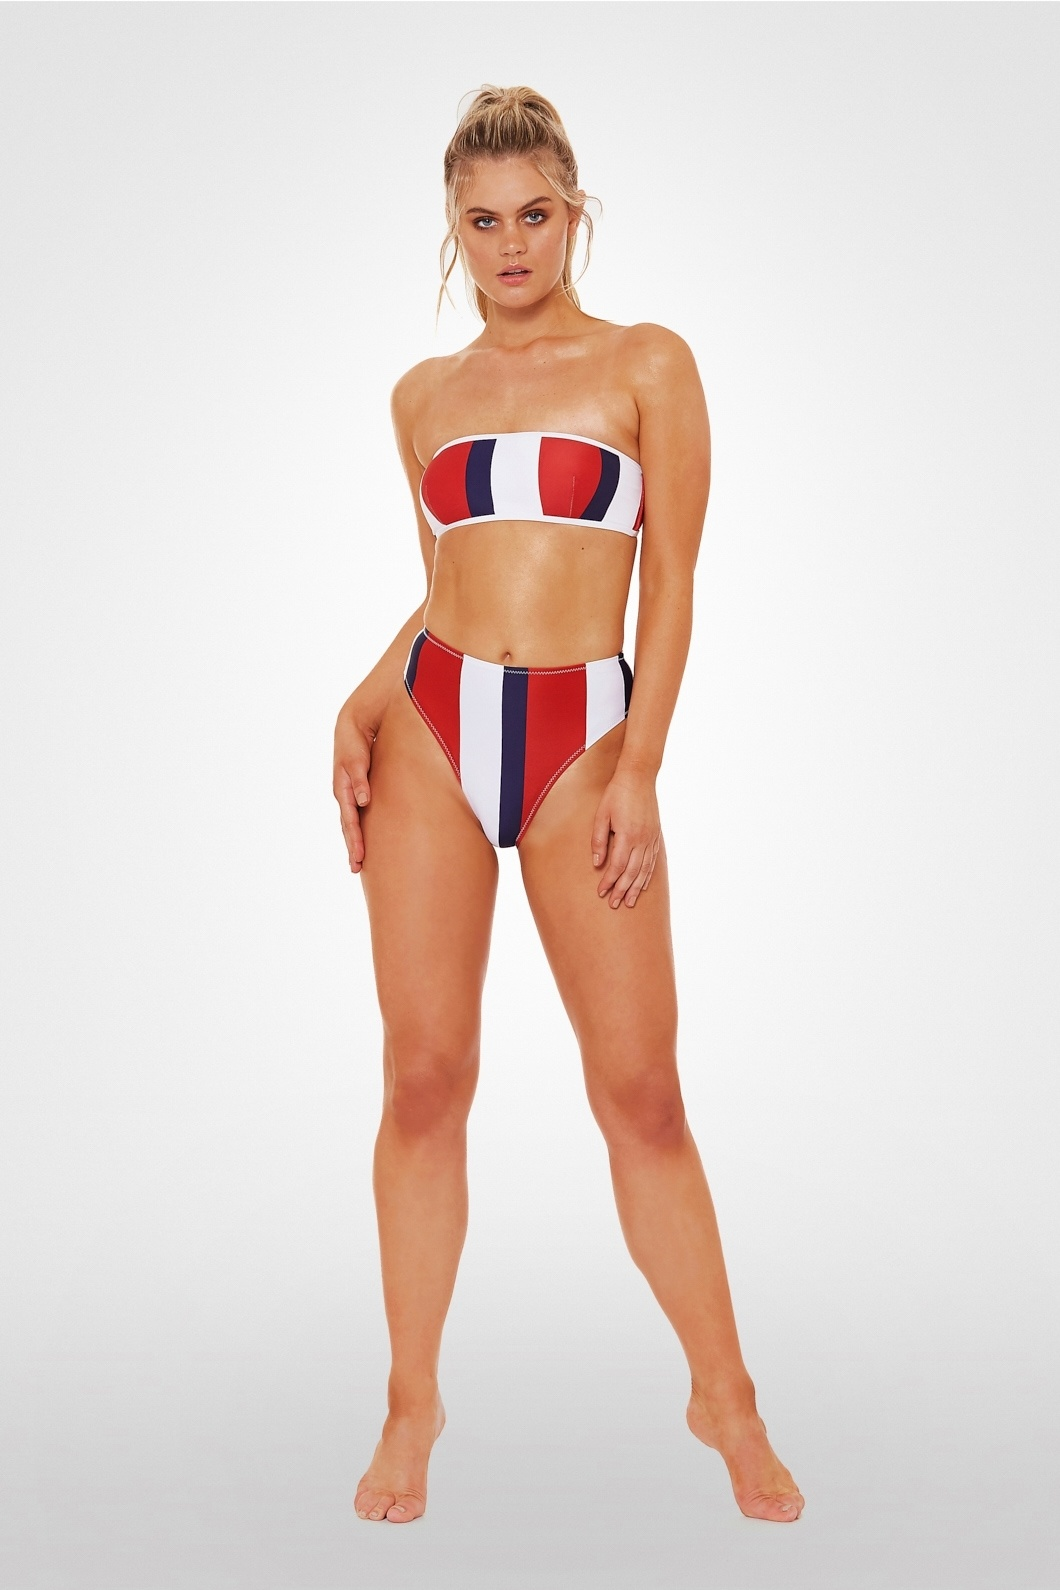 L'urv  Bulletproof Bandeau navy/red/white